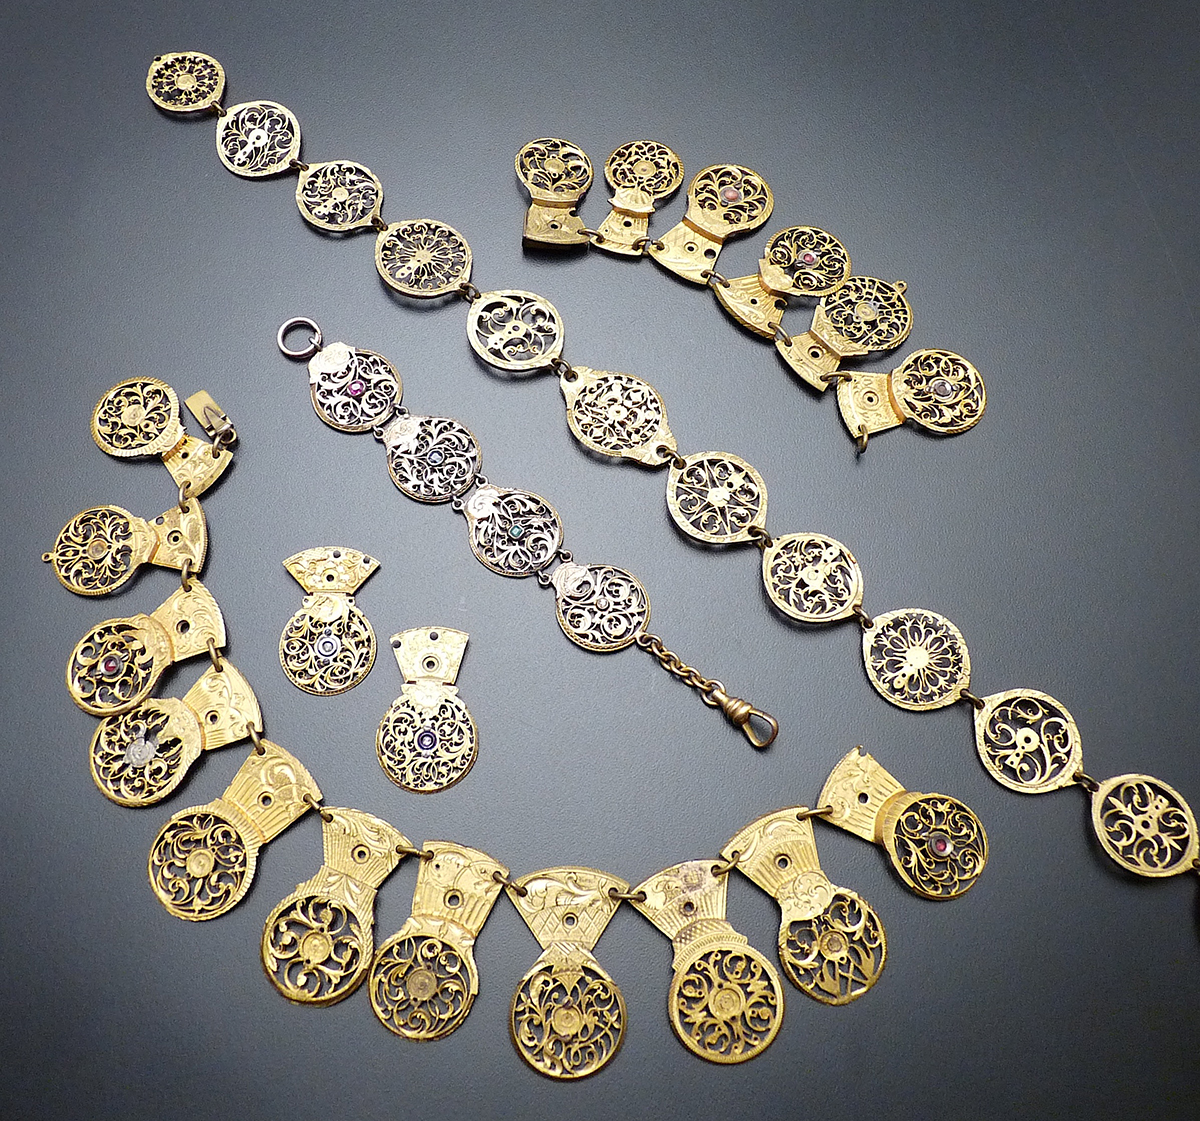 18th century collection of watch cogs and cover plates for Repurposed vintage jewelry designers